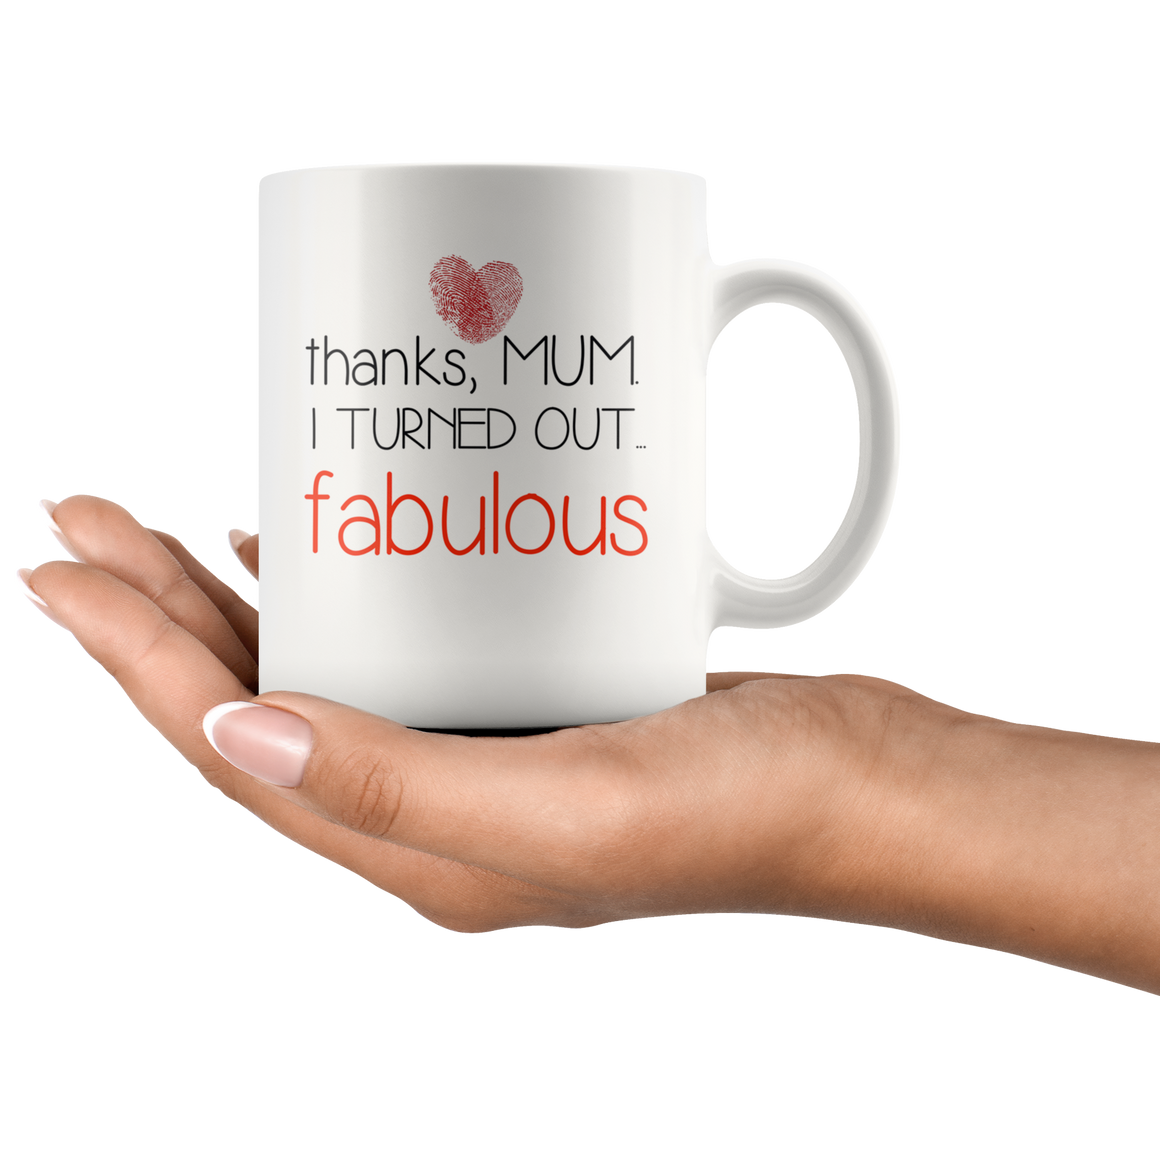 Thanks mum I turned out fabulous coffee mug gift - mothers day gift